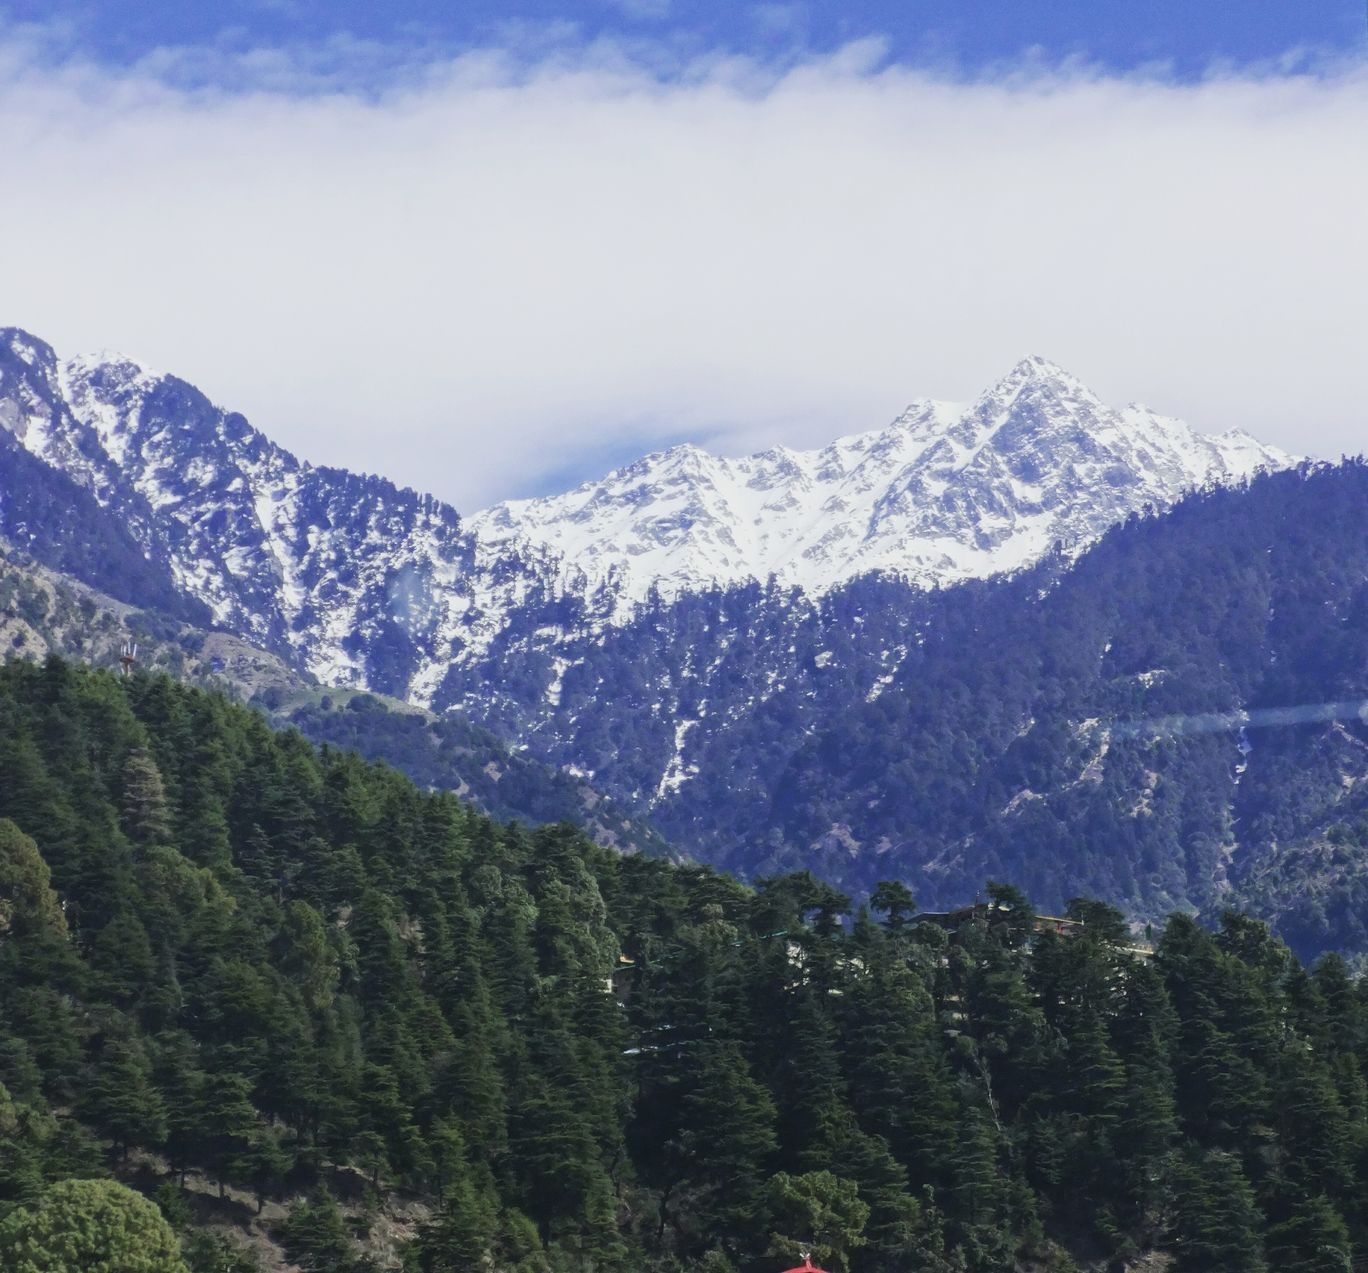 Photo of McLeod Ganj By Kunal Jain